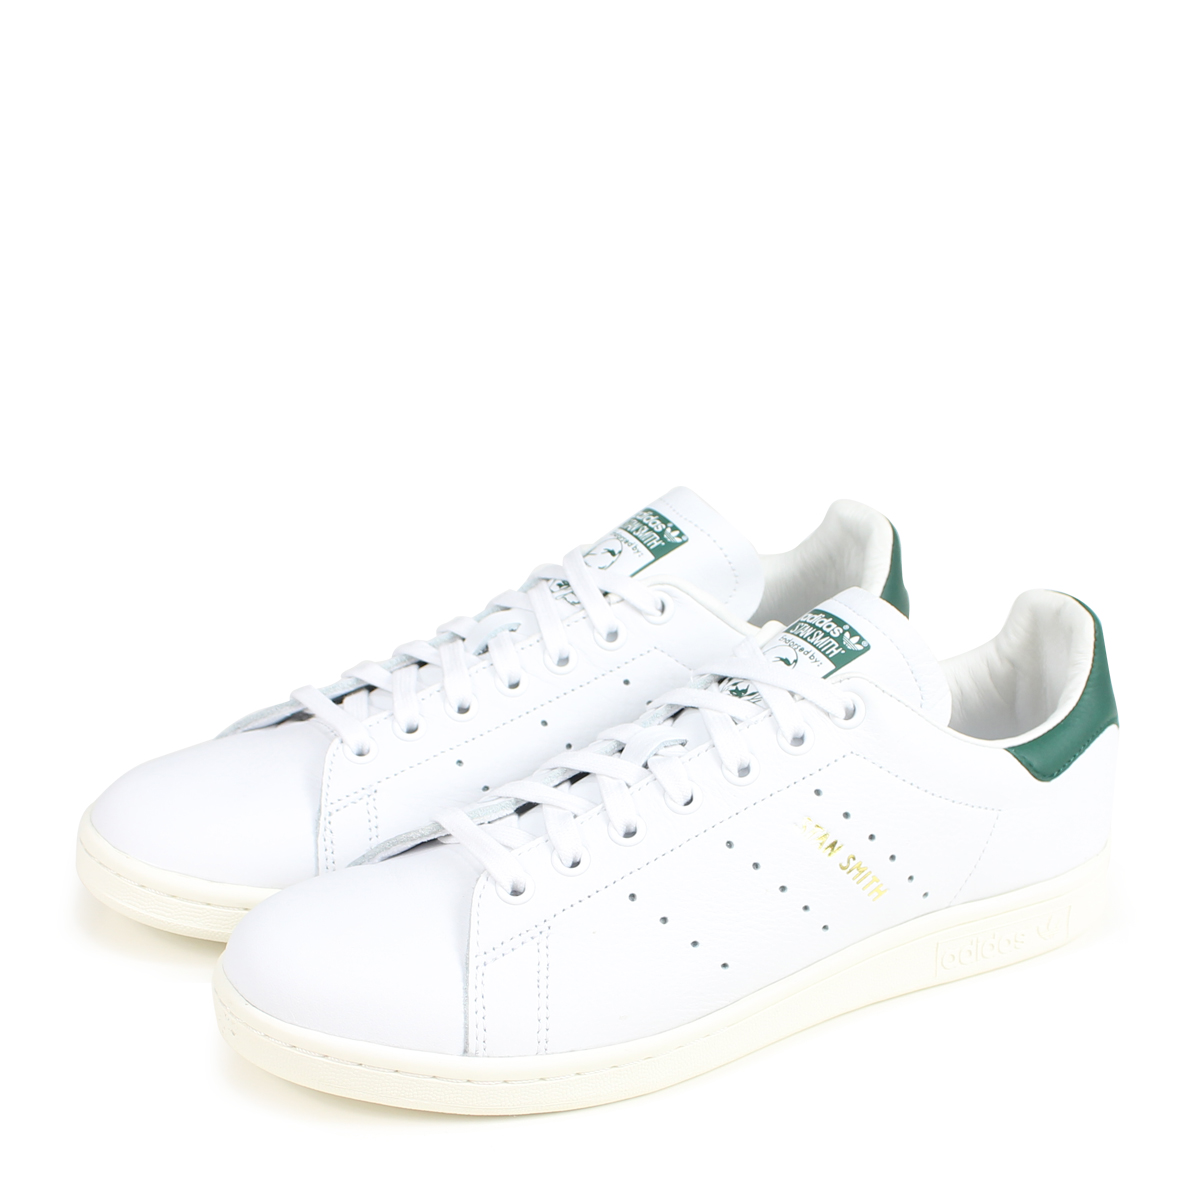 separation shoes fc7d9 50f0b adidas Originals STAN SMITH Adidas originals Stan Smith sneakers men gap  Dis CQ2871 white [the 8/9 additional arrival] [198]